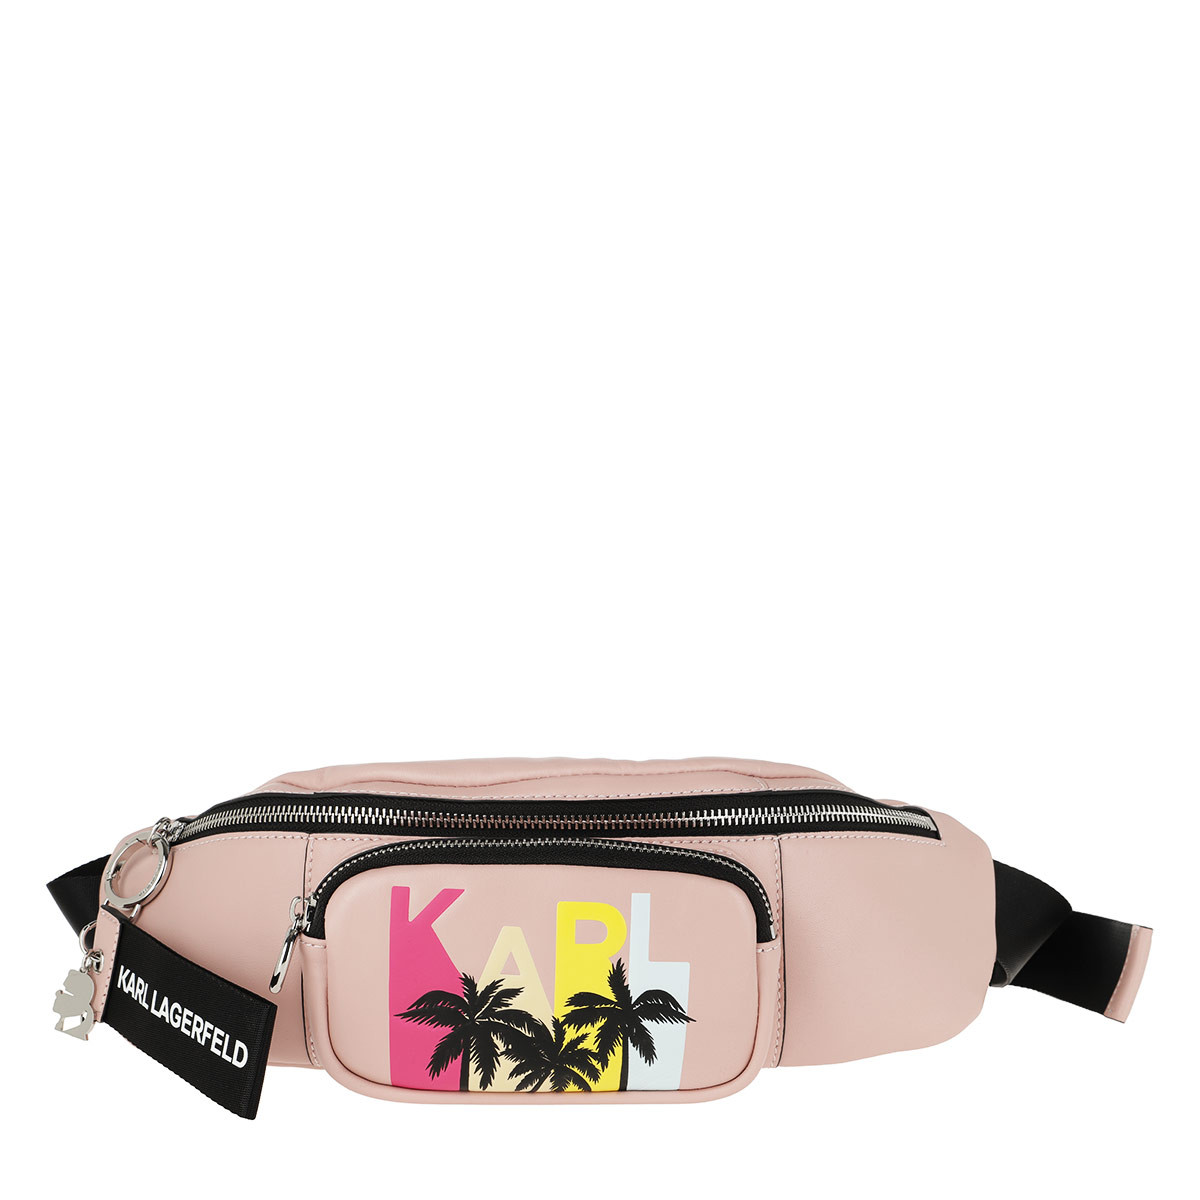 Karl Lagerfeld Gürteltasche - Karlifornia Belt Bag Light Pink - in rosa - für Damen